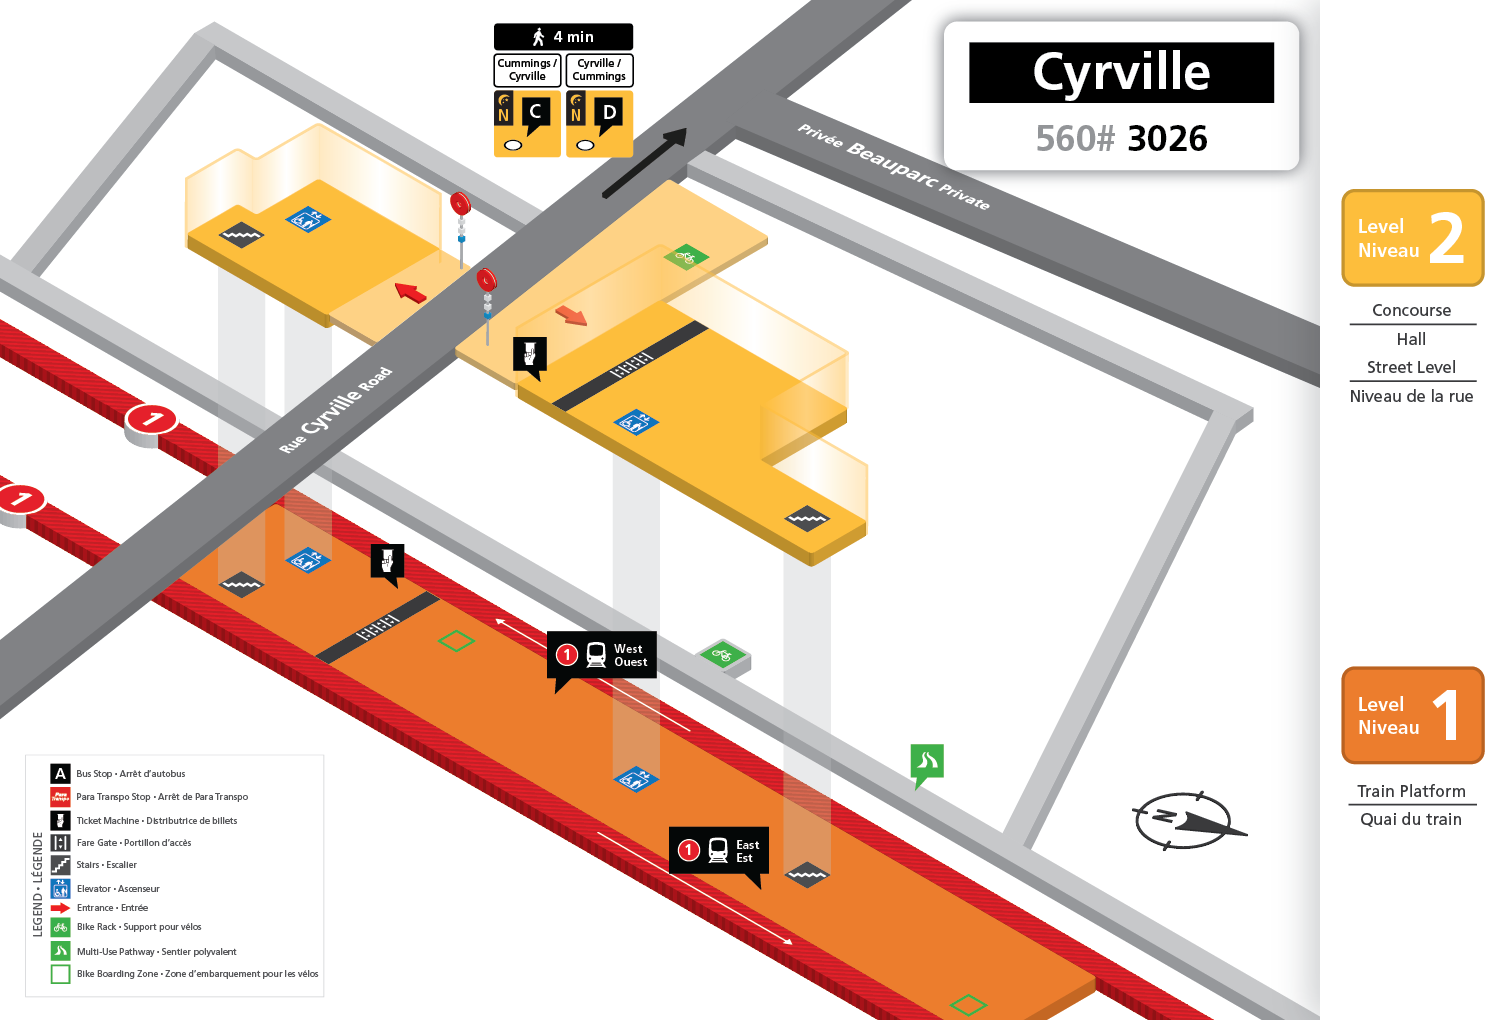 New Cyrville station layout